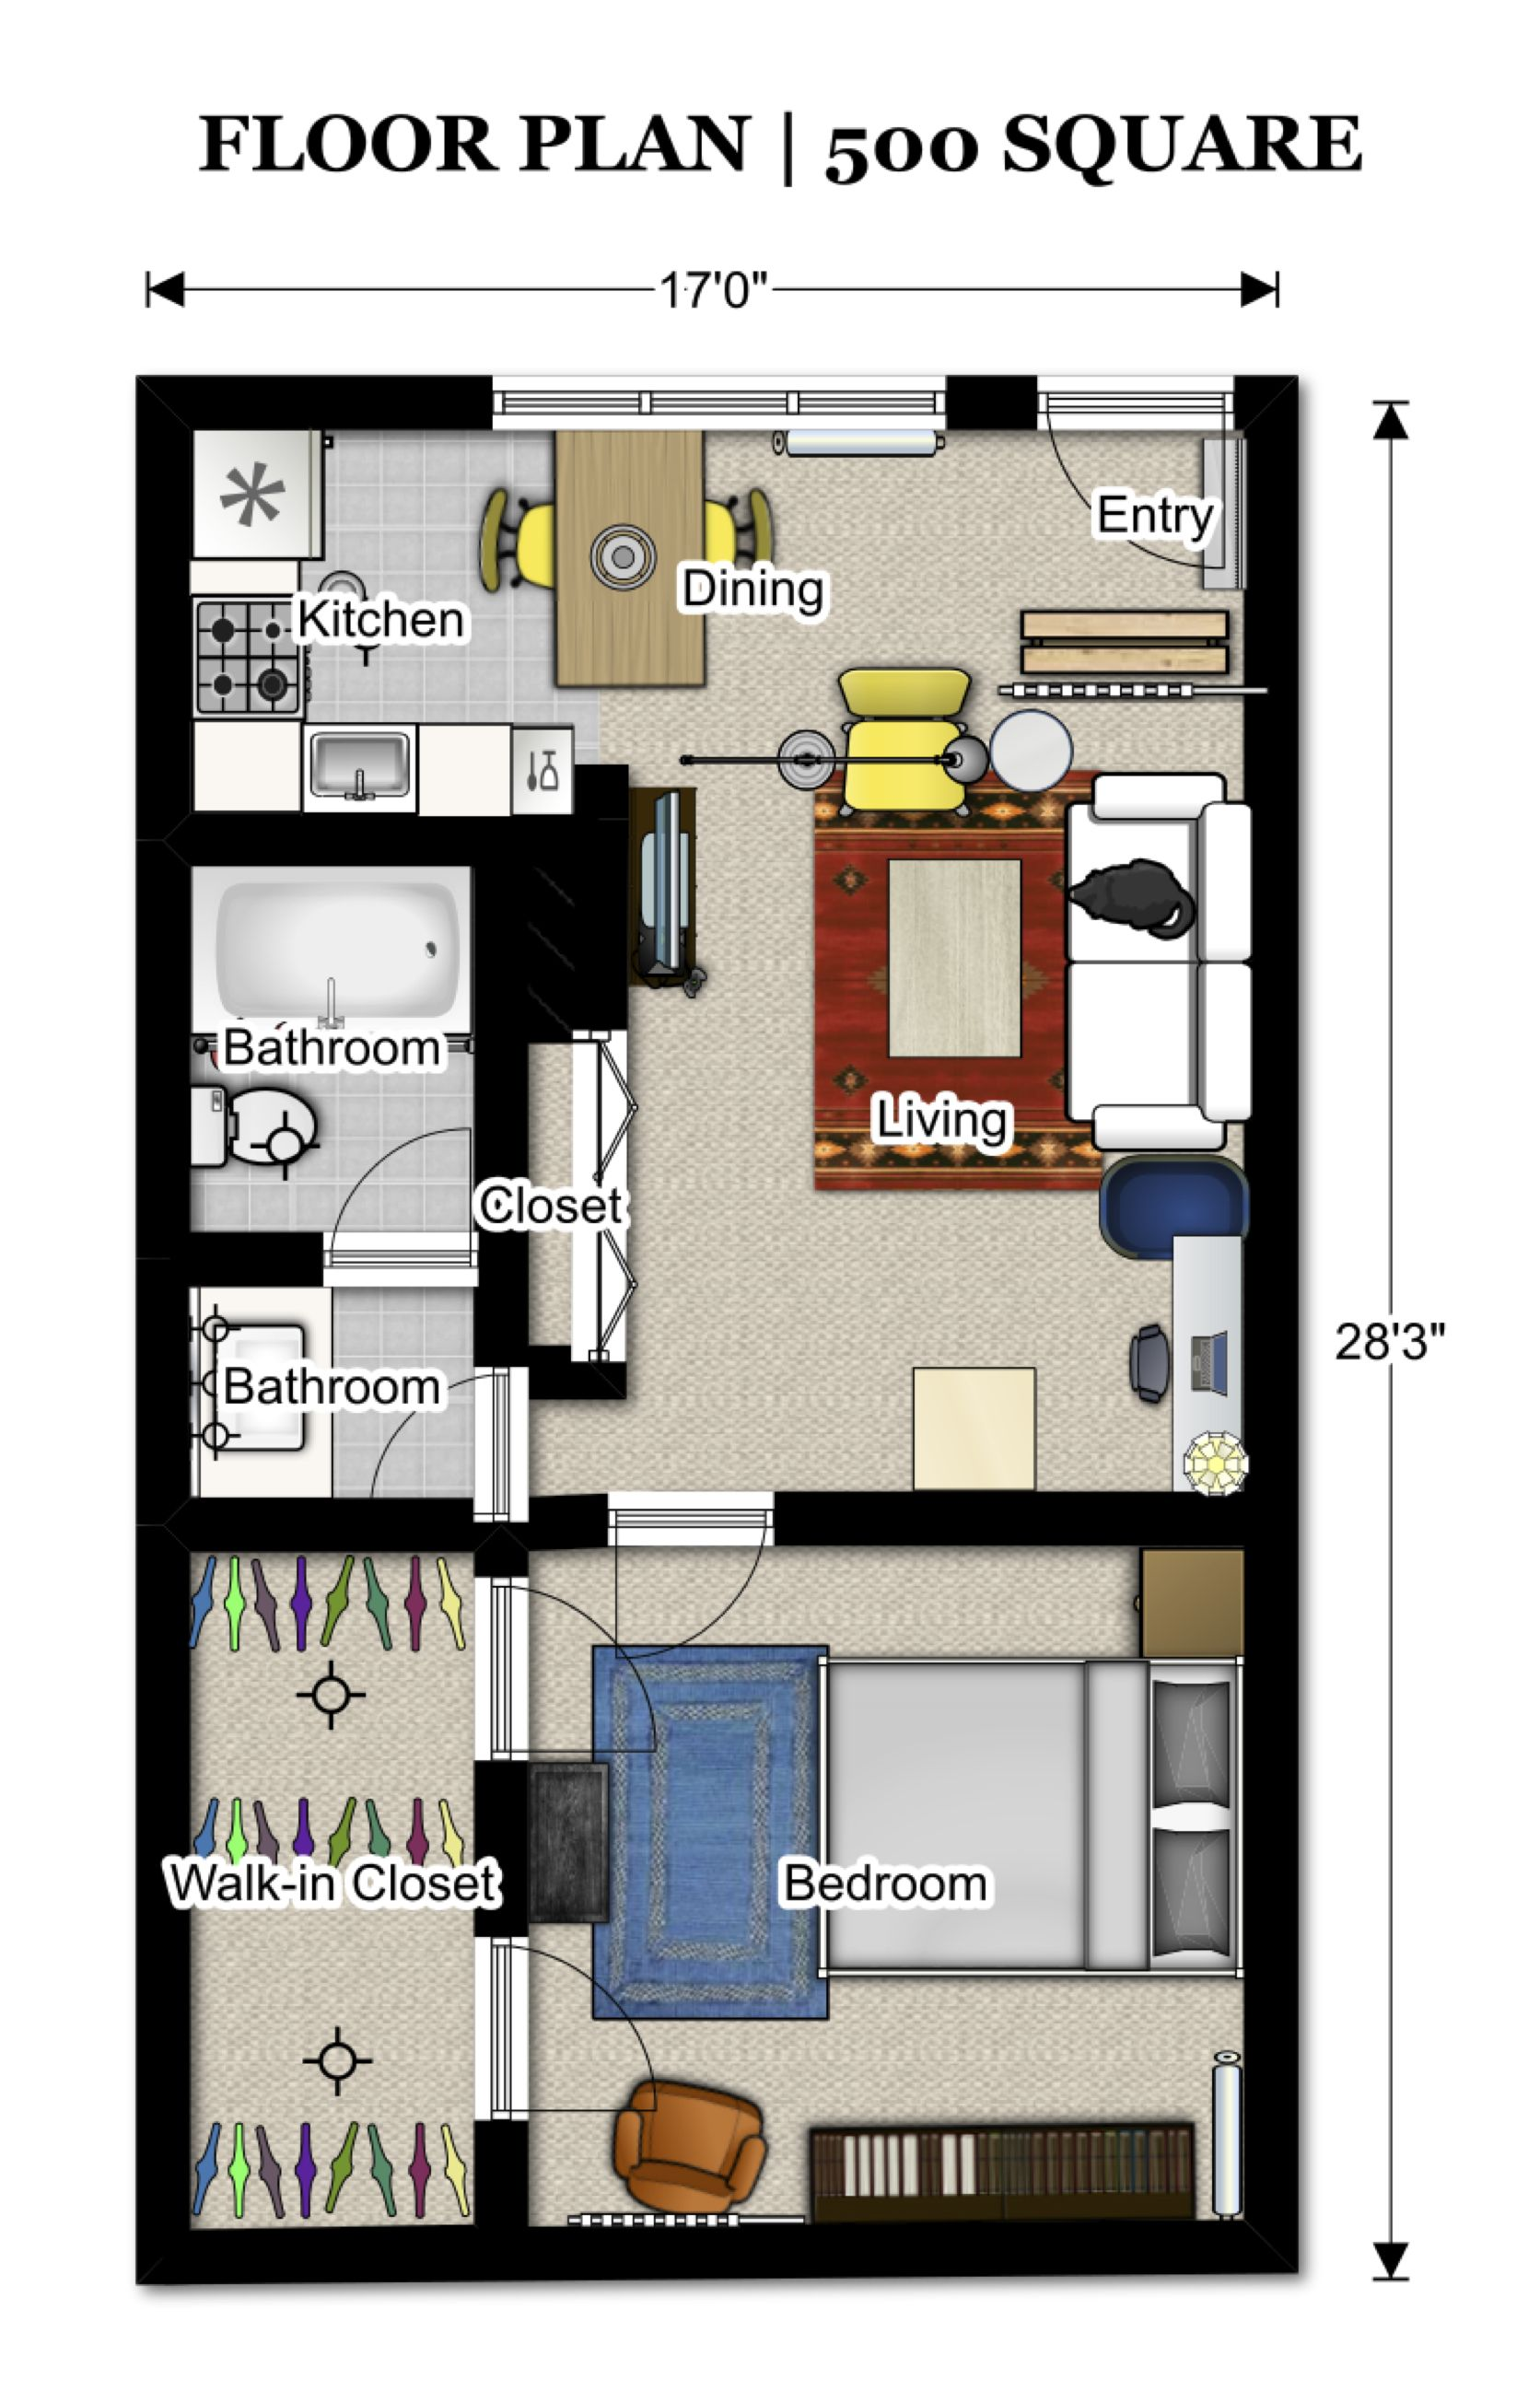 Simple living in an 800 sq ft small house - 500 Square Feet Apartment Floor Plan Home Design Great Lovely